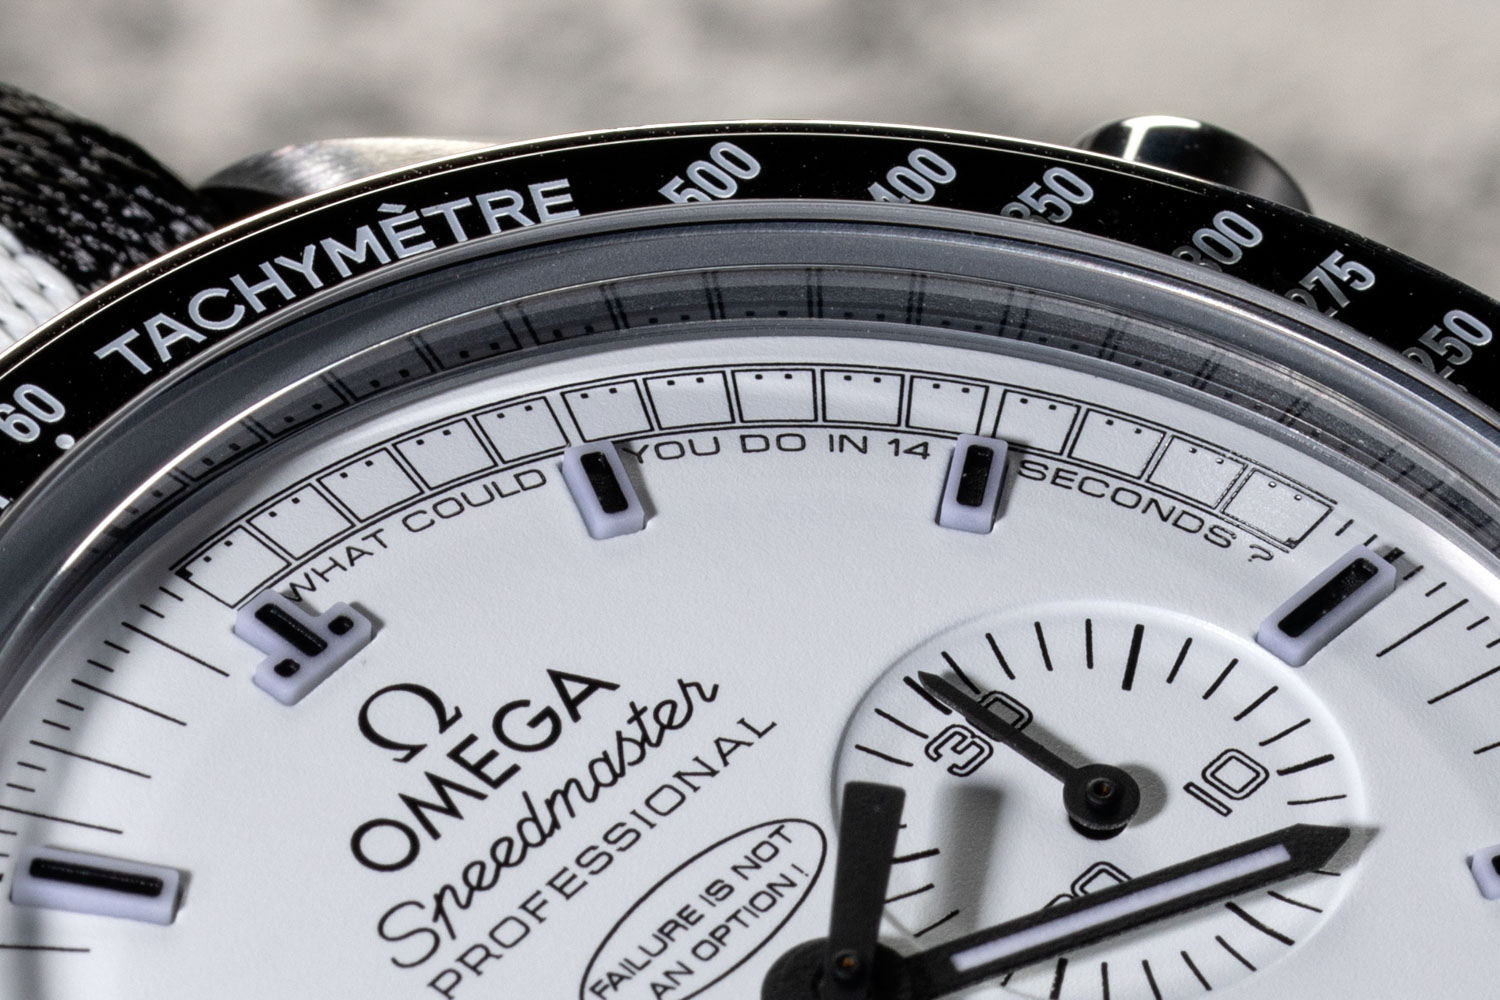 The Omega Speedmaster Silver Snoopy launched in 2015, was limited to 1970 pieces (©Revolution)